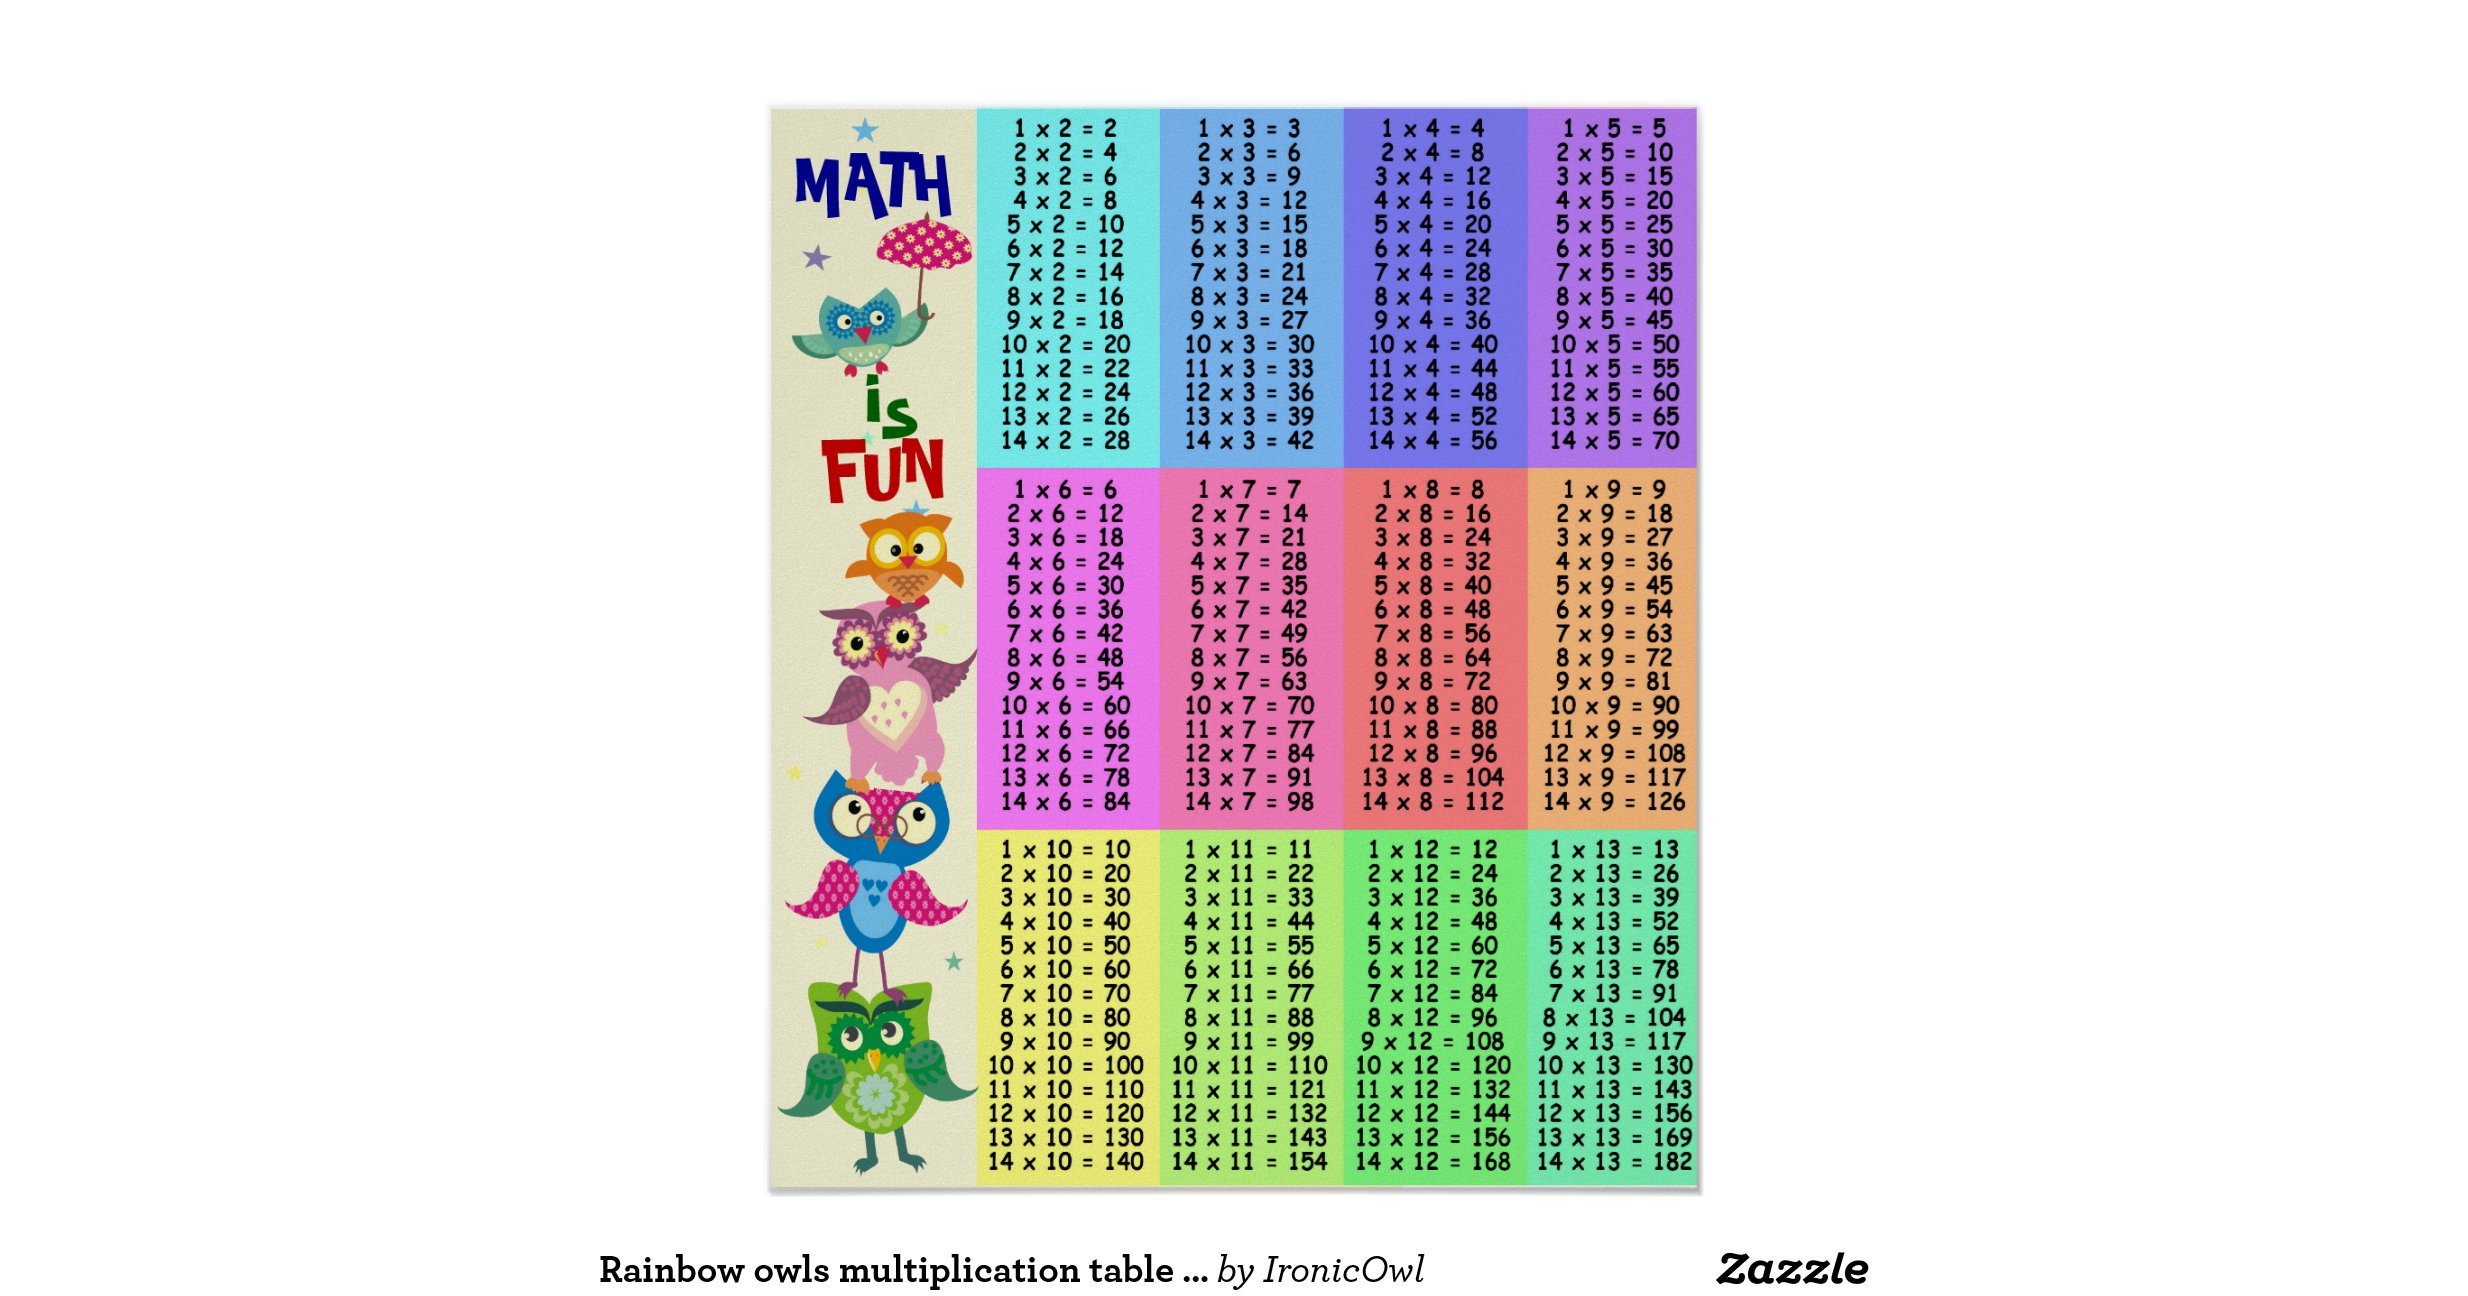 Rainbow owls multiplication table fun poster for Multiplication table to 52